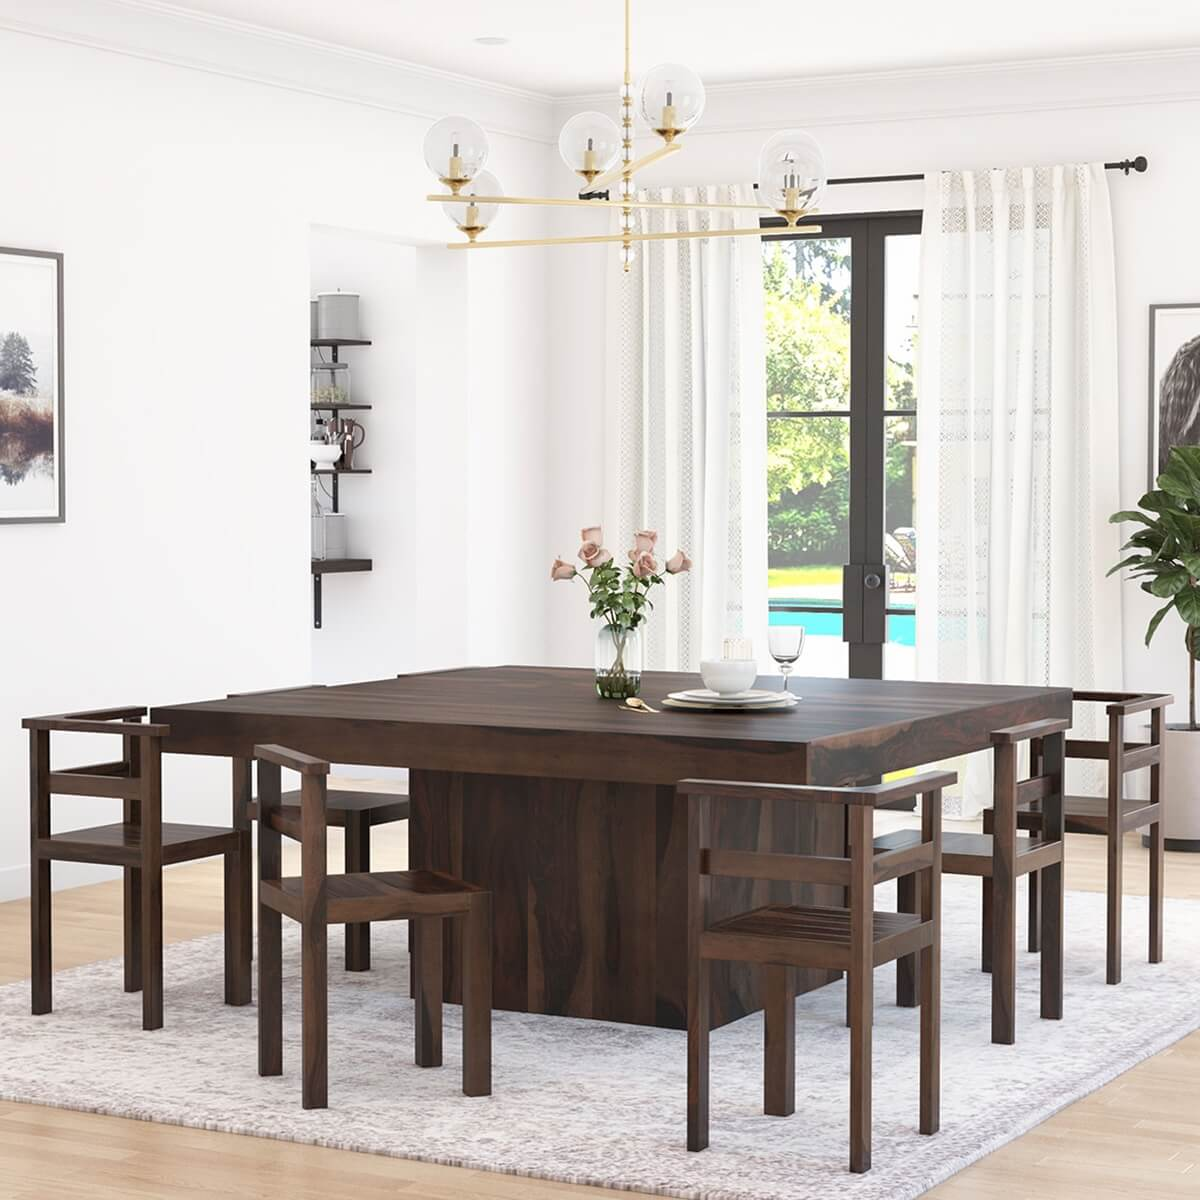 Table With 8 Chairs Set 384900 Modern Rustic Solid Wood 64 Square Pedestal Dining